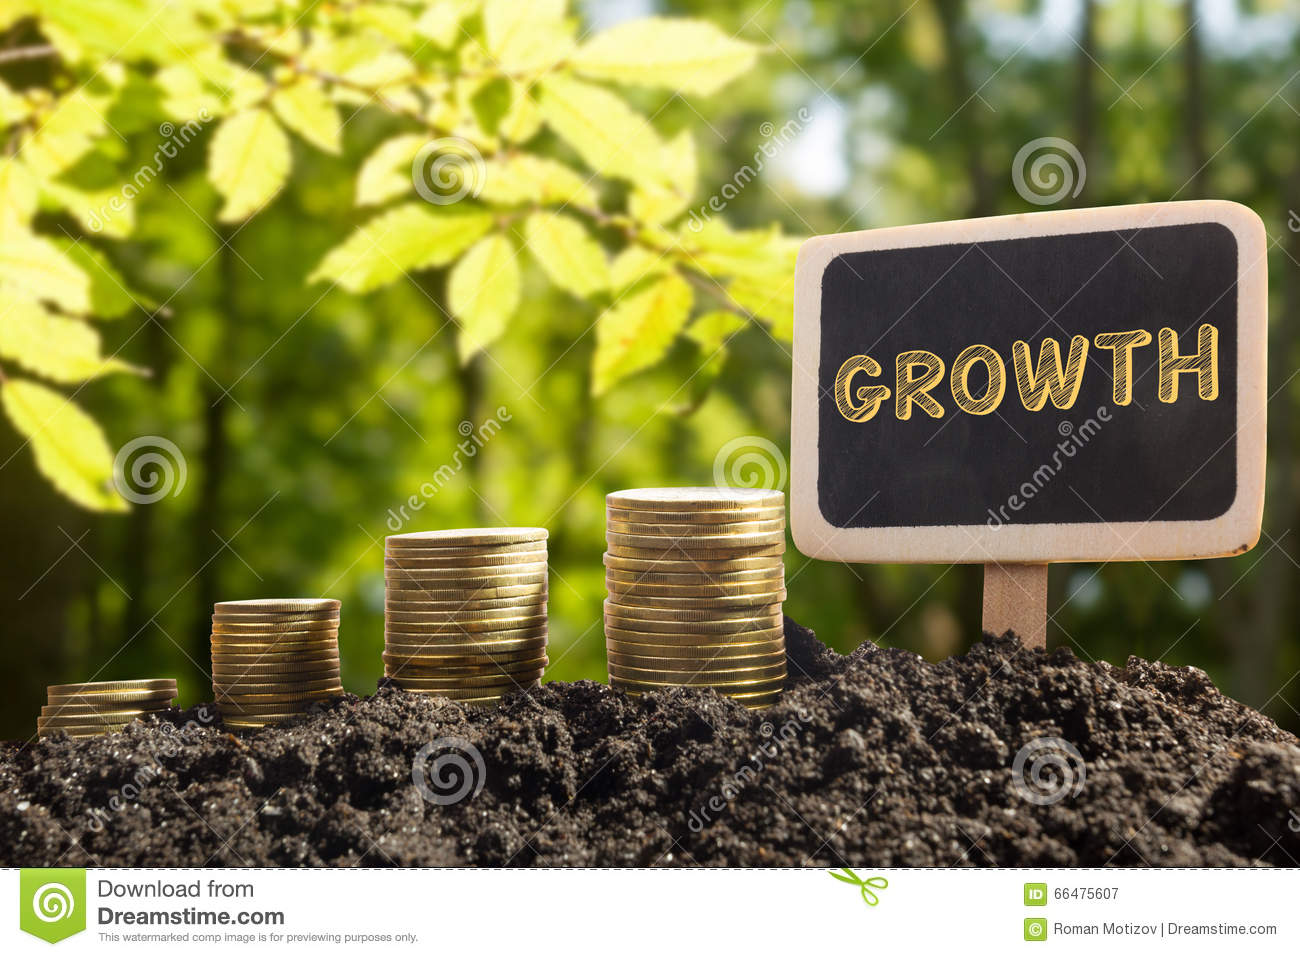 Growing profit business concept stock illustration 79054579 - Successful flower growing business ...